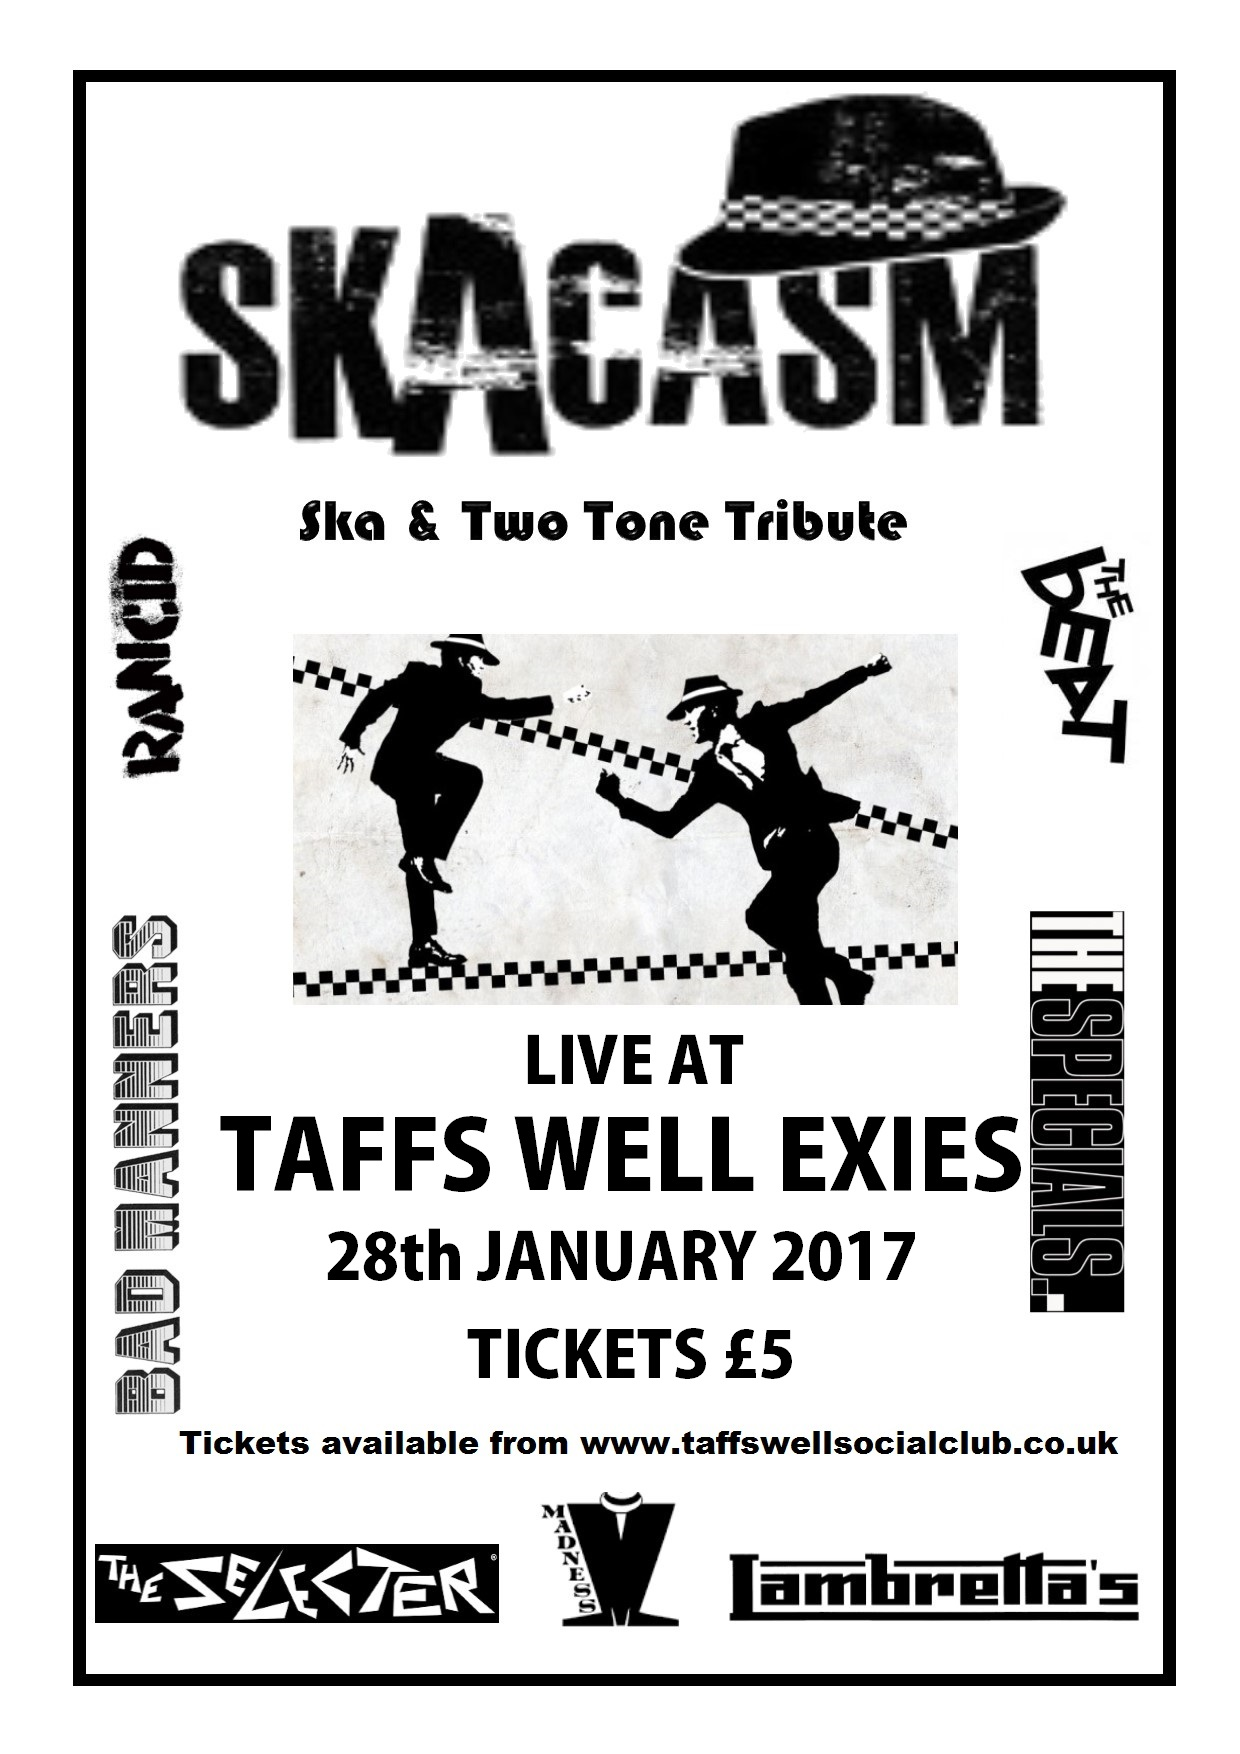 SKACASM-TAFFS WELL EXIES-28-O1-2017